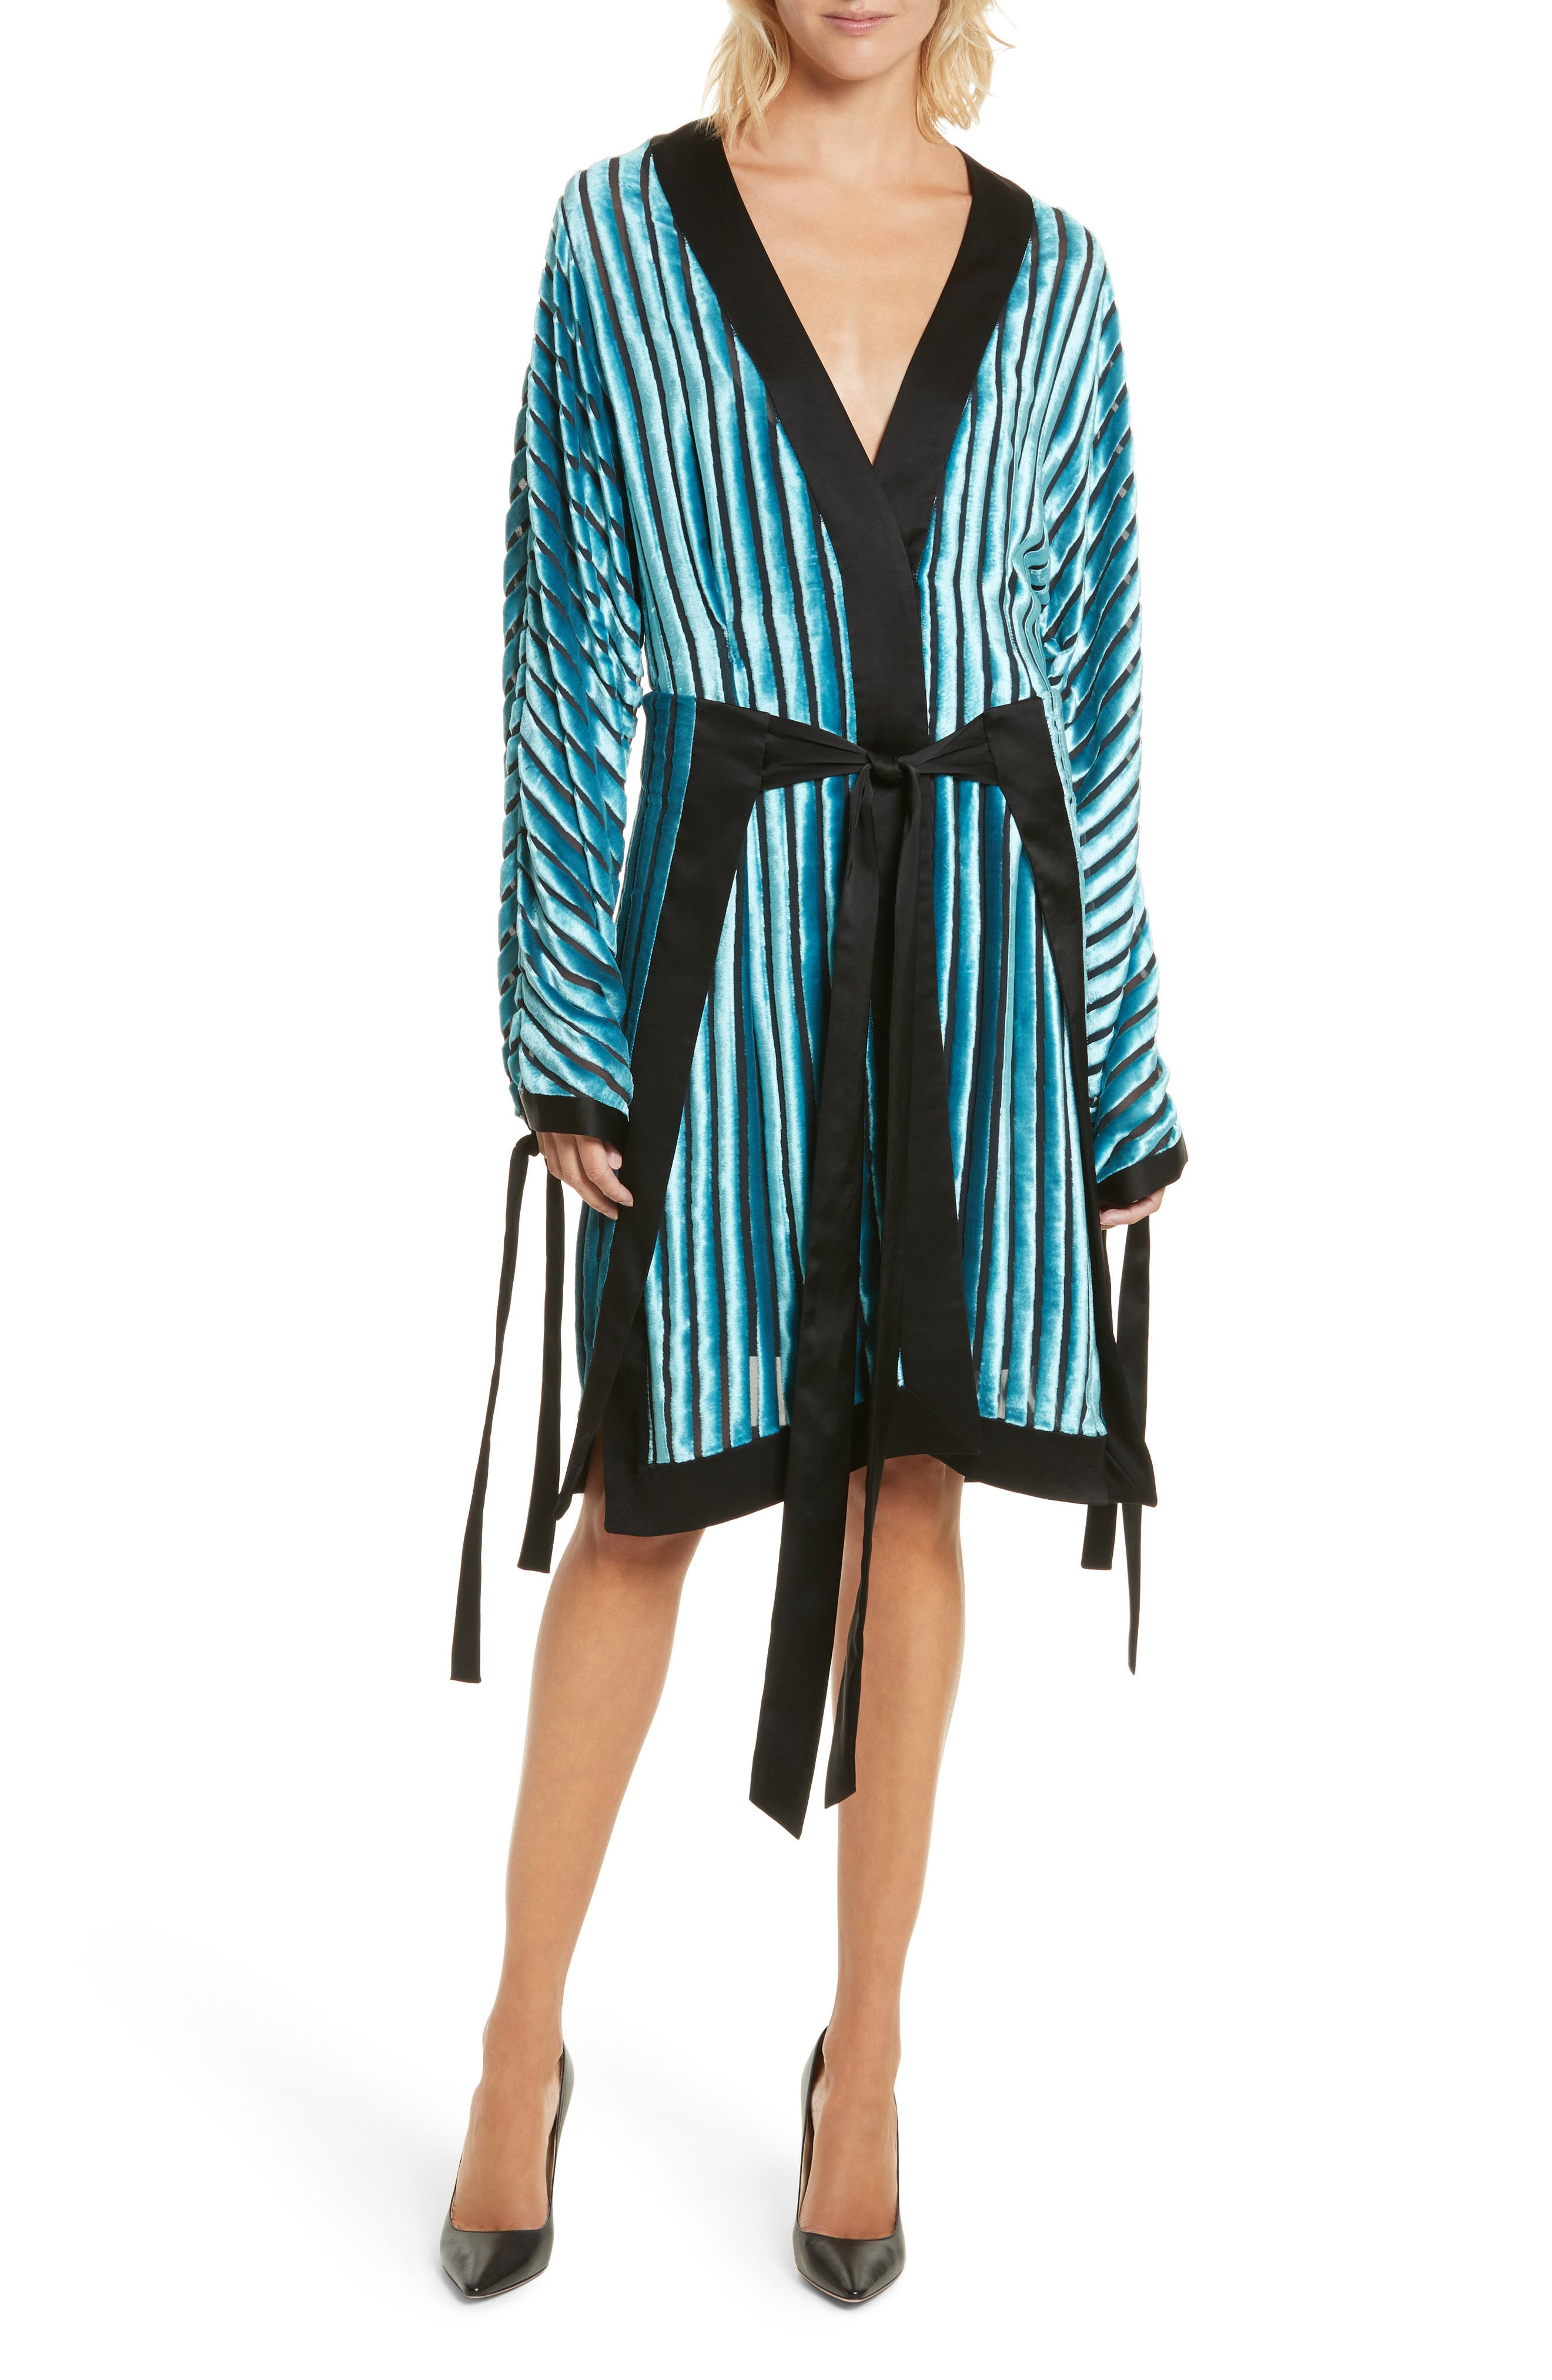 Velvet Burnout Kimono Dress,                             Main thumbnail 1, color,                             Black/ Marine